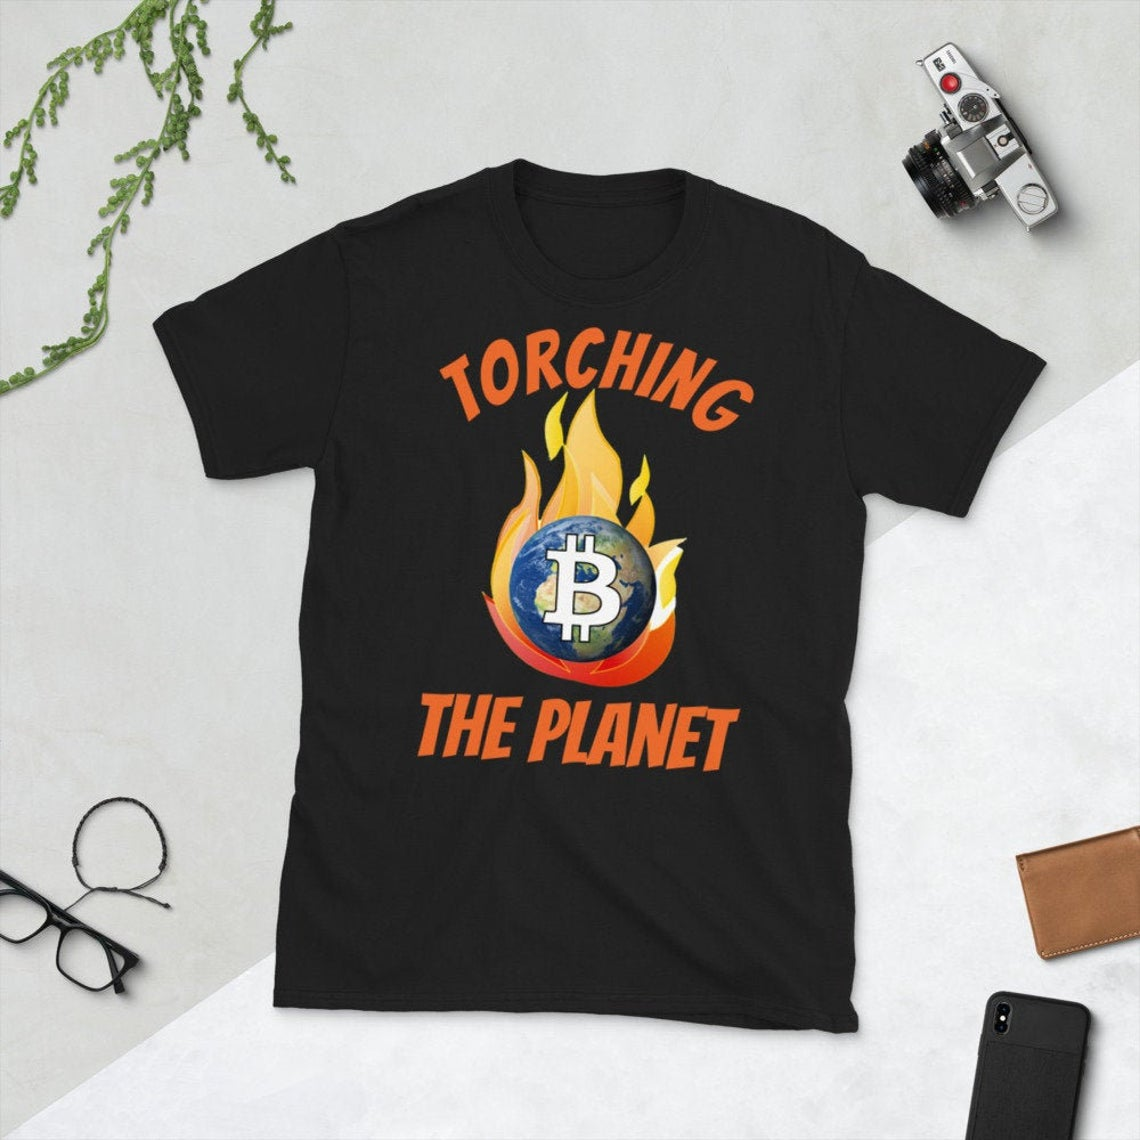 Torching the Planet for Fun and Profit Bitcoin Short-Sleeve Unisex T-Shirt - Now Available in the Shop - 5 Different Color Options